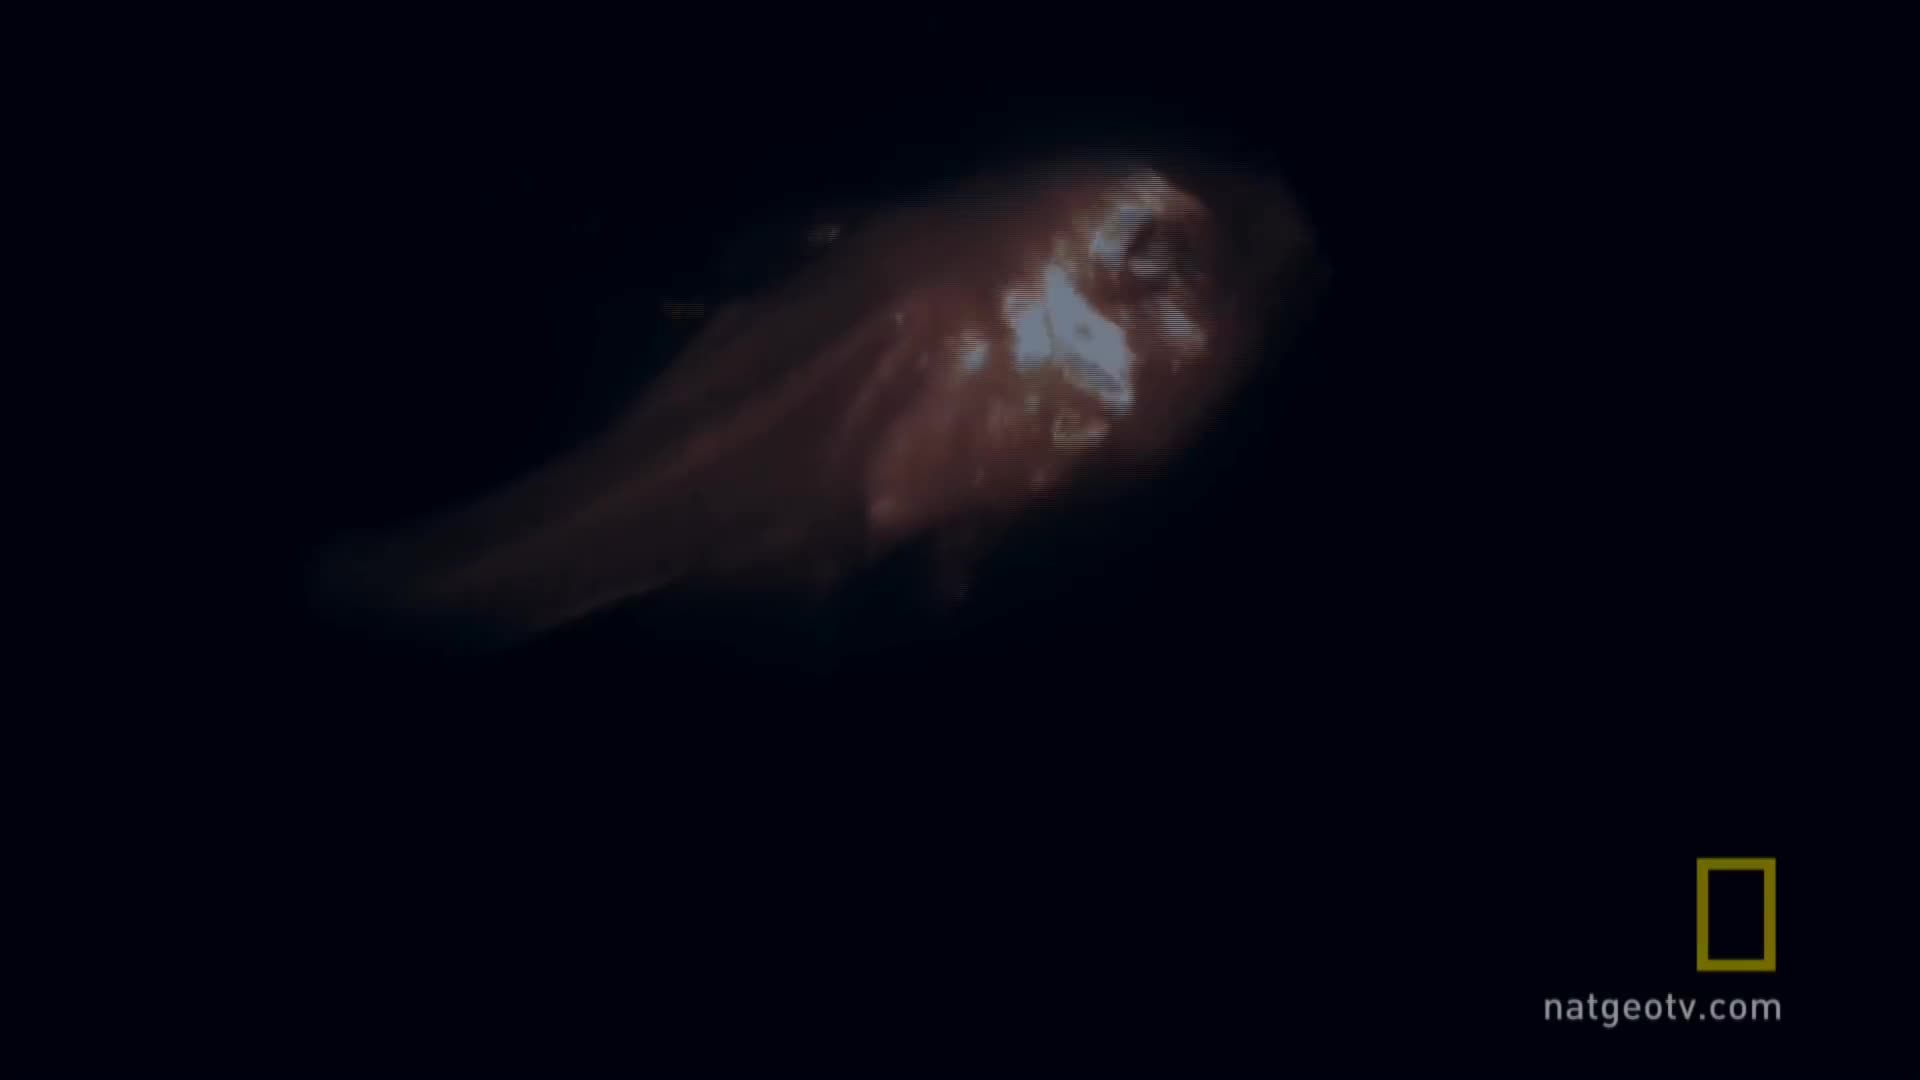 Bioluminescence, Bioluminescence on Camera, Hunt for the Giant Squid, National Geographic, deep sea diving, expedition week, giant squid video, nature, squid, starlight camera, Hadouken GIFs